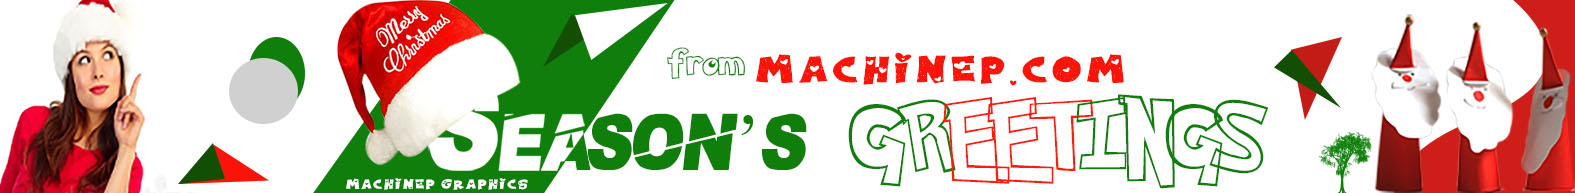 Season's greetings from machinep.com by machinep grphics